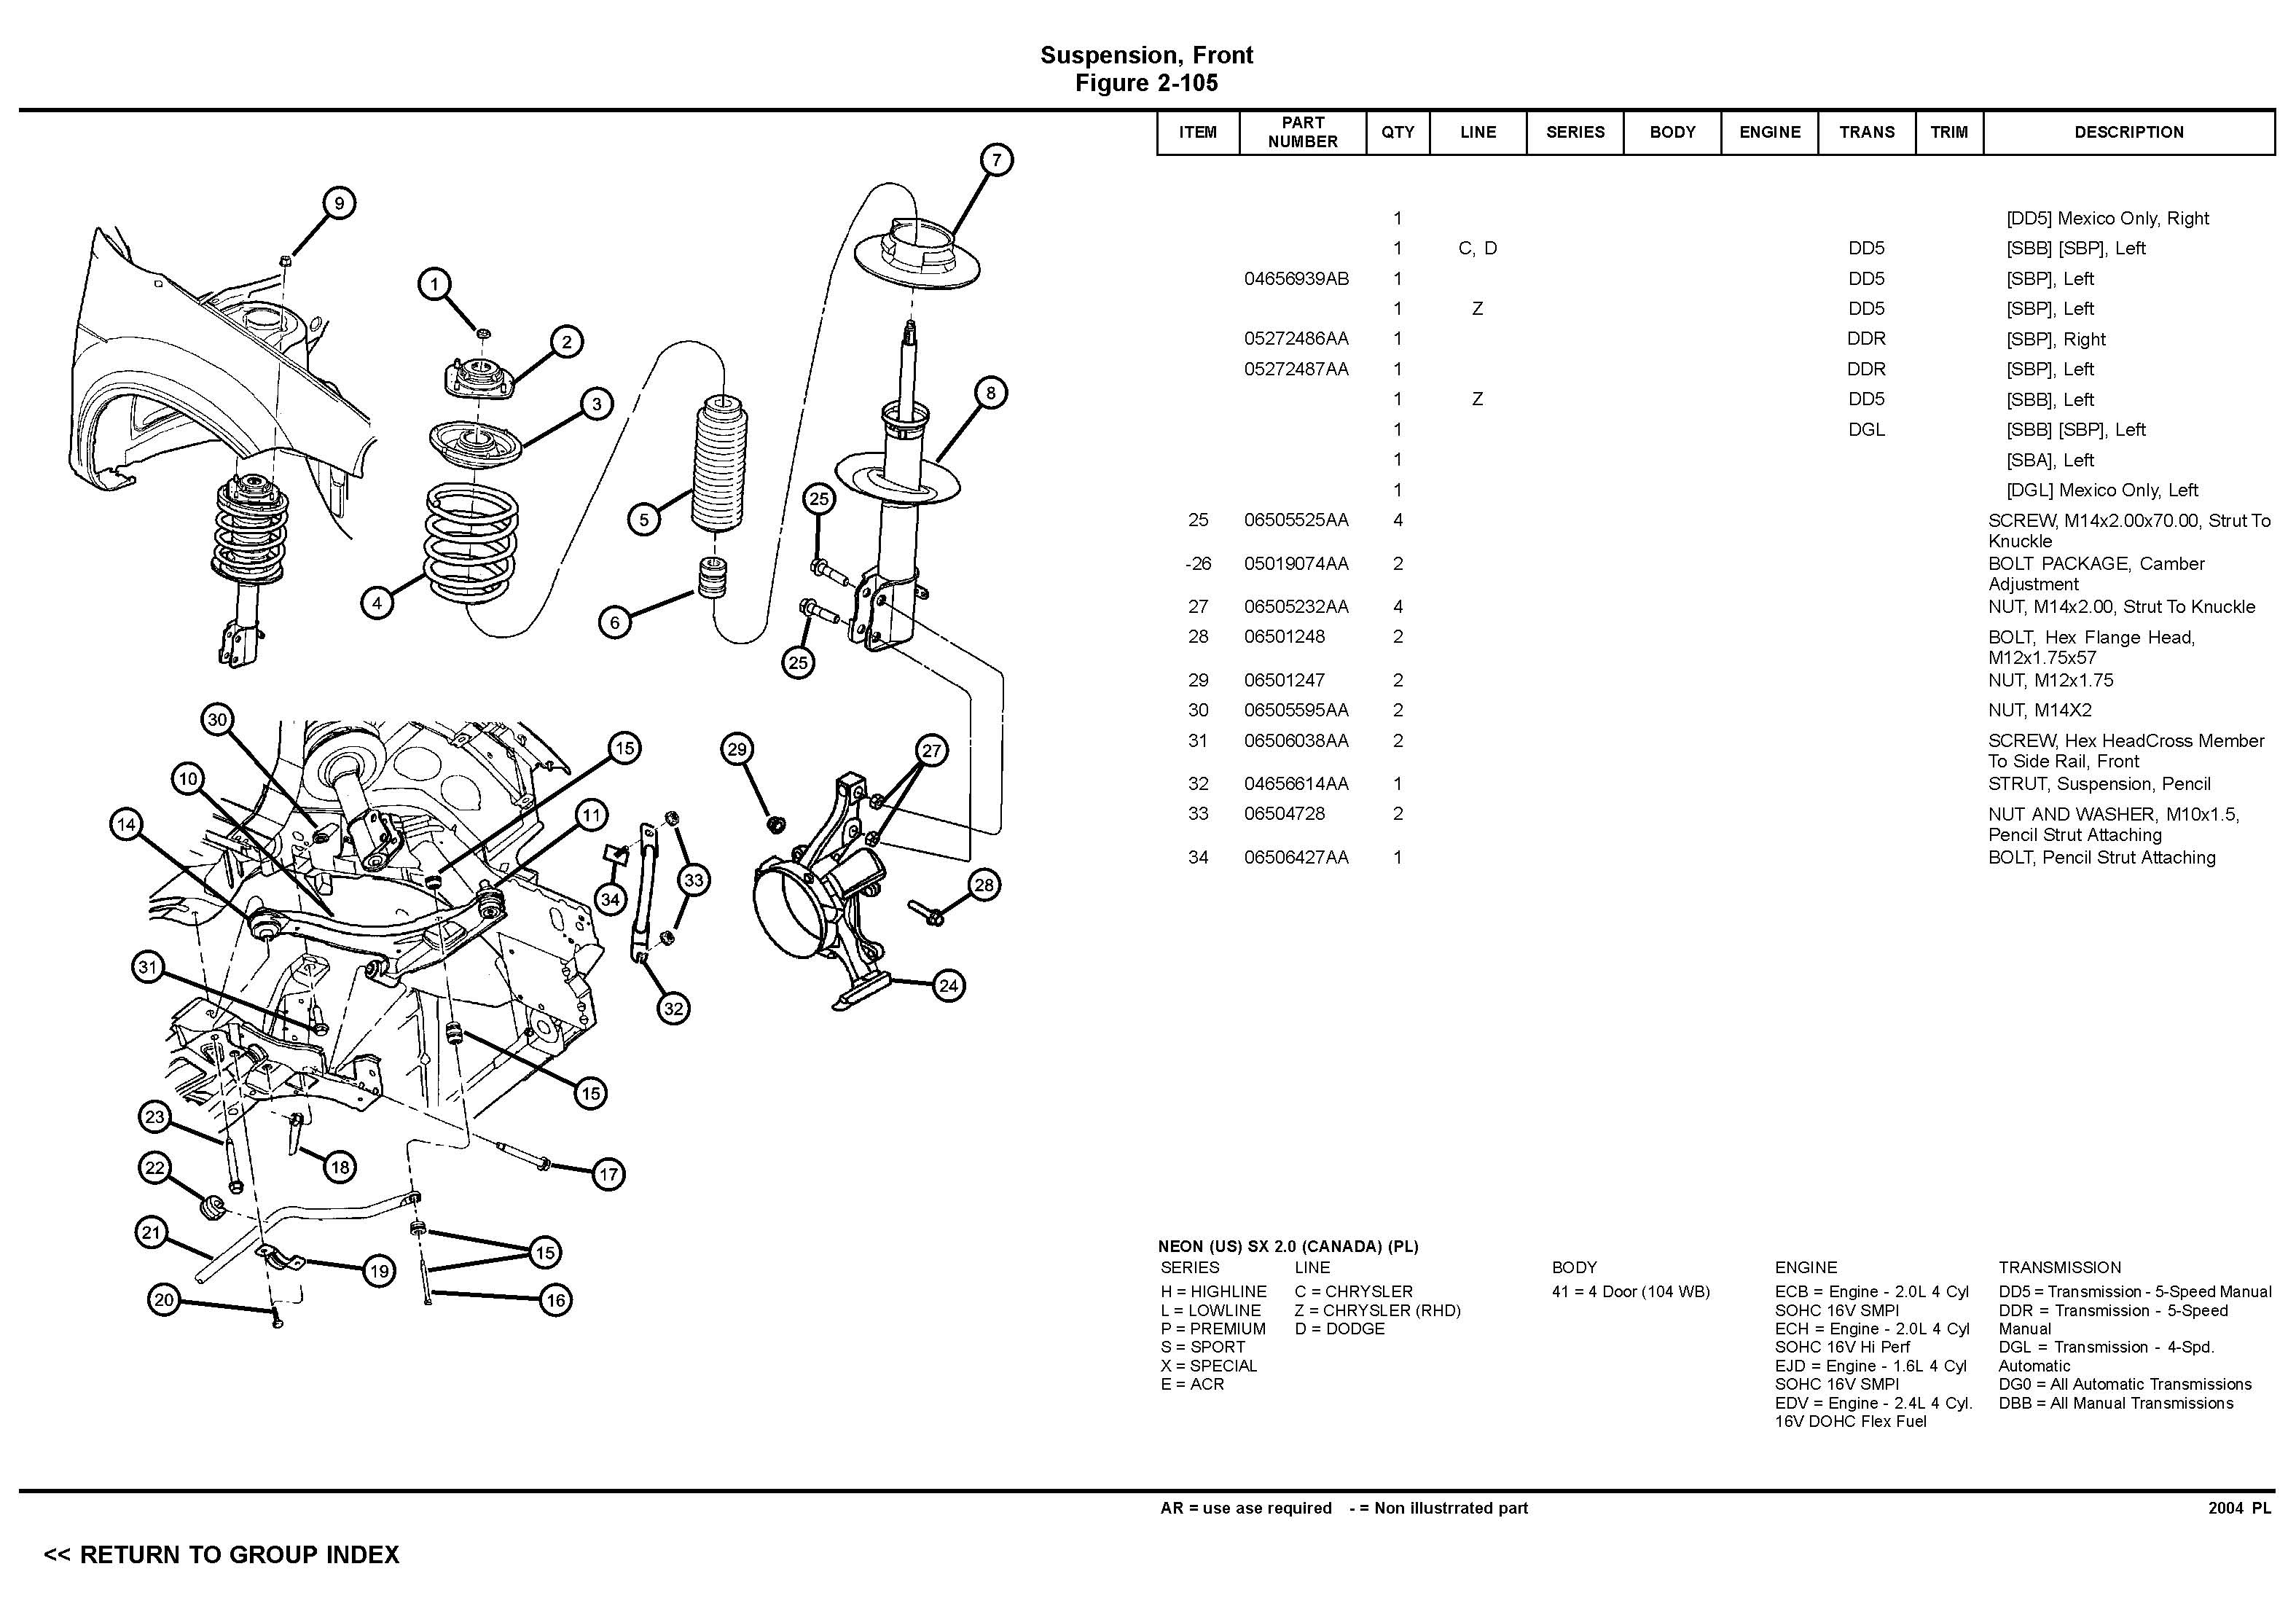 2005 Dodge Neon Parts Diagram Good Place To Get Wiring Diagram